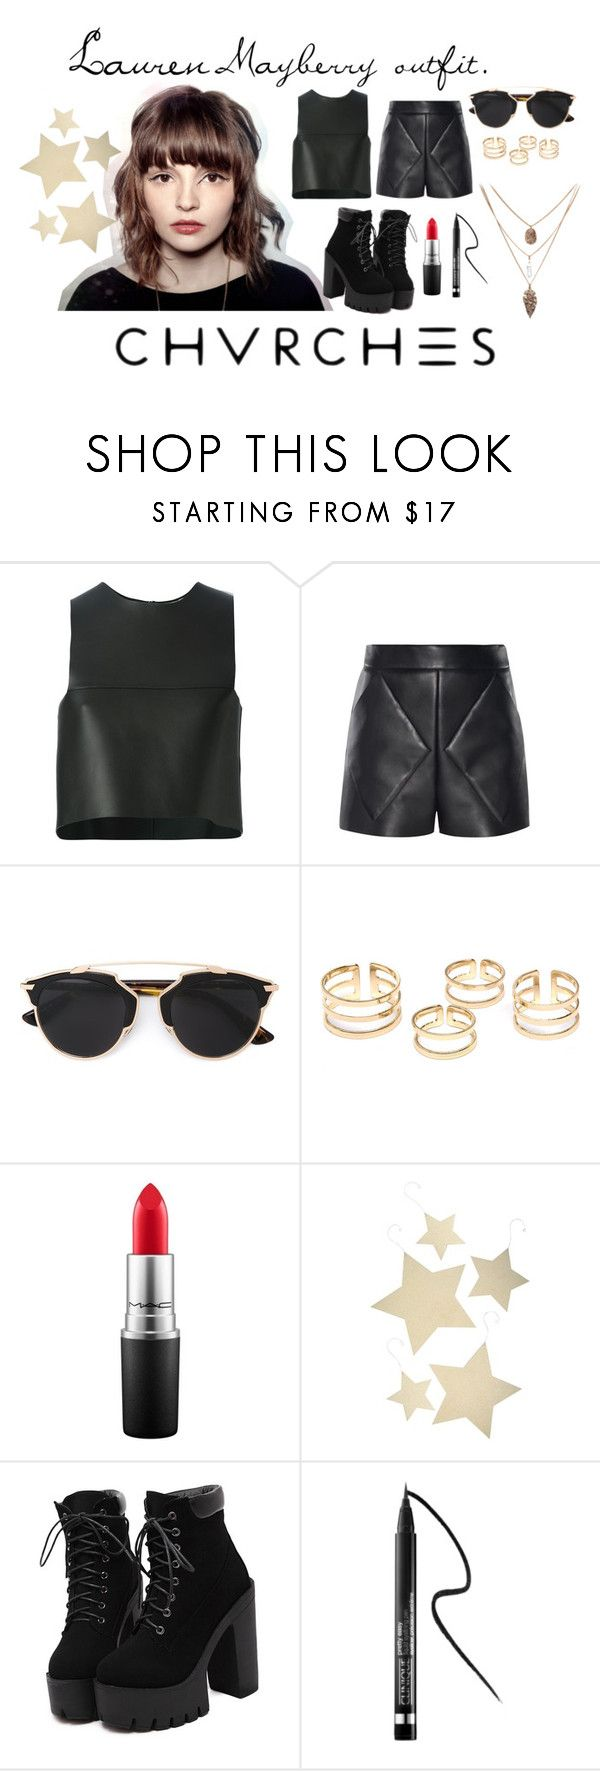 """""""Lauren Mayberry Inspired."""" by claudiadessi on Polyvore featuring Fendi, Balenciaga, Christian Dior, MAC Cosmetics, Bethany Lowe, Clinique, lauren and Chvrches"""